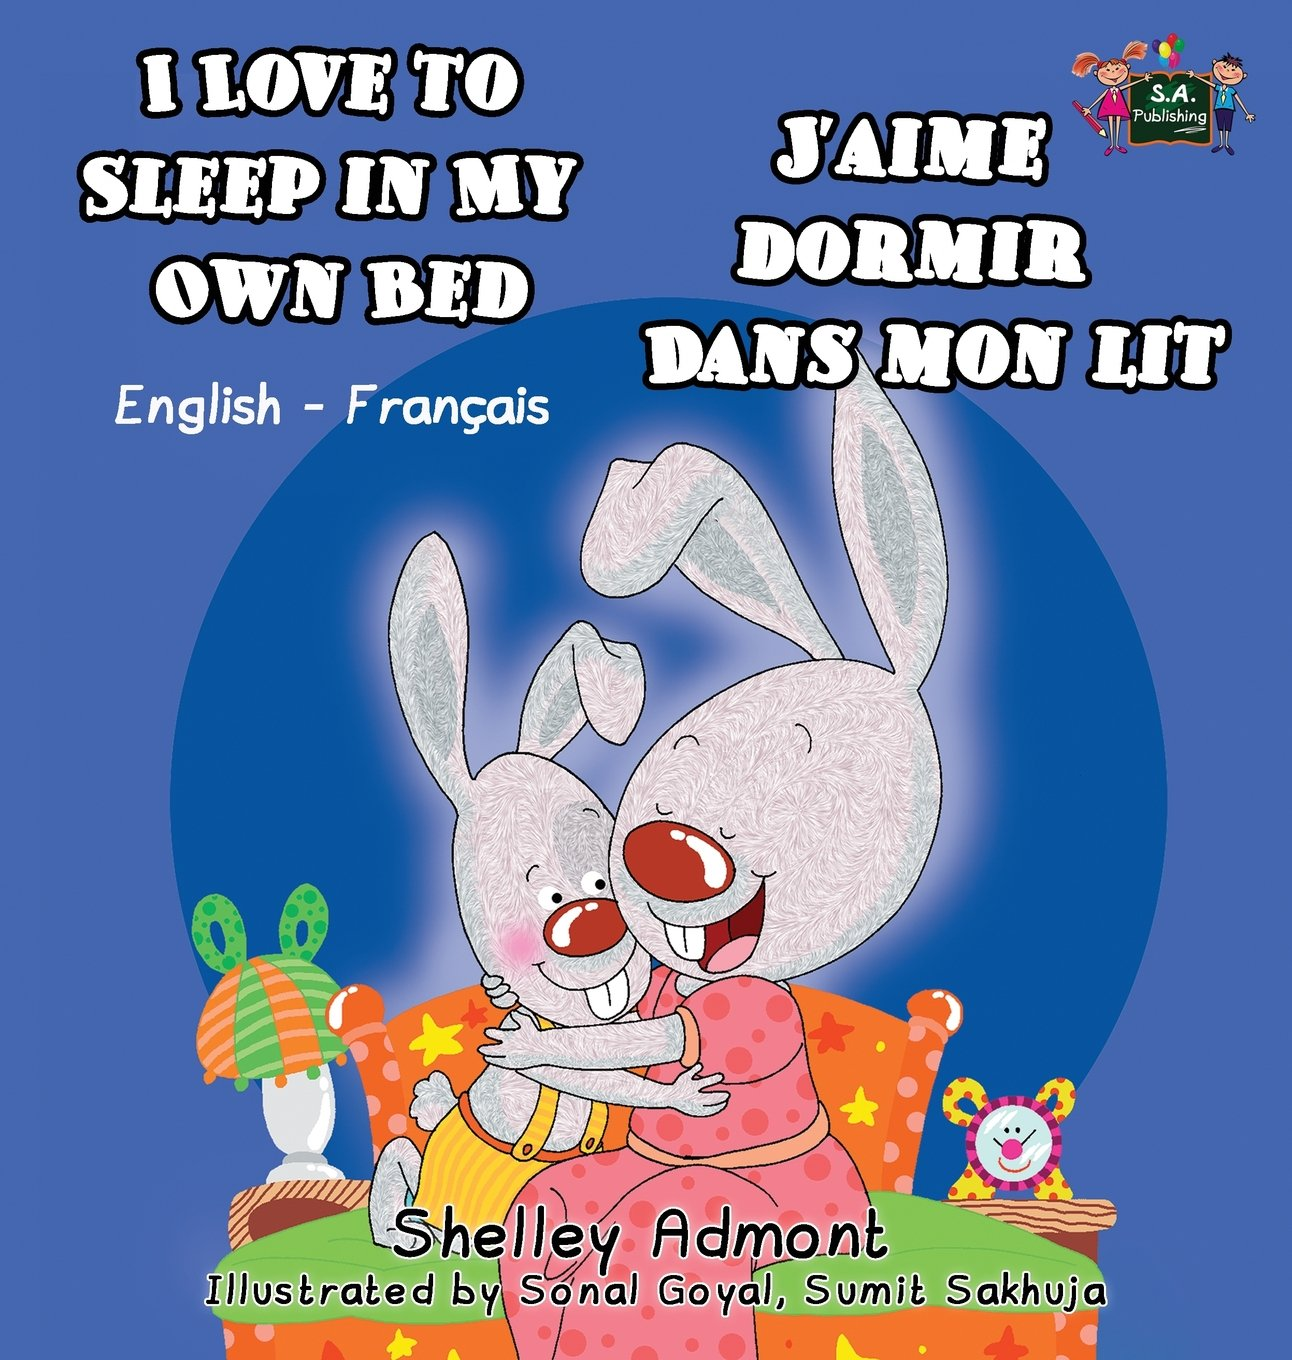 Download I Love to Sleep in My Own Bed J'aime dormir dans mon lit: English French Bilingual Edition (English French Bilingual Collection) (French Edition) pdf